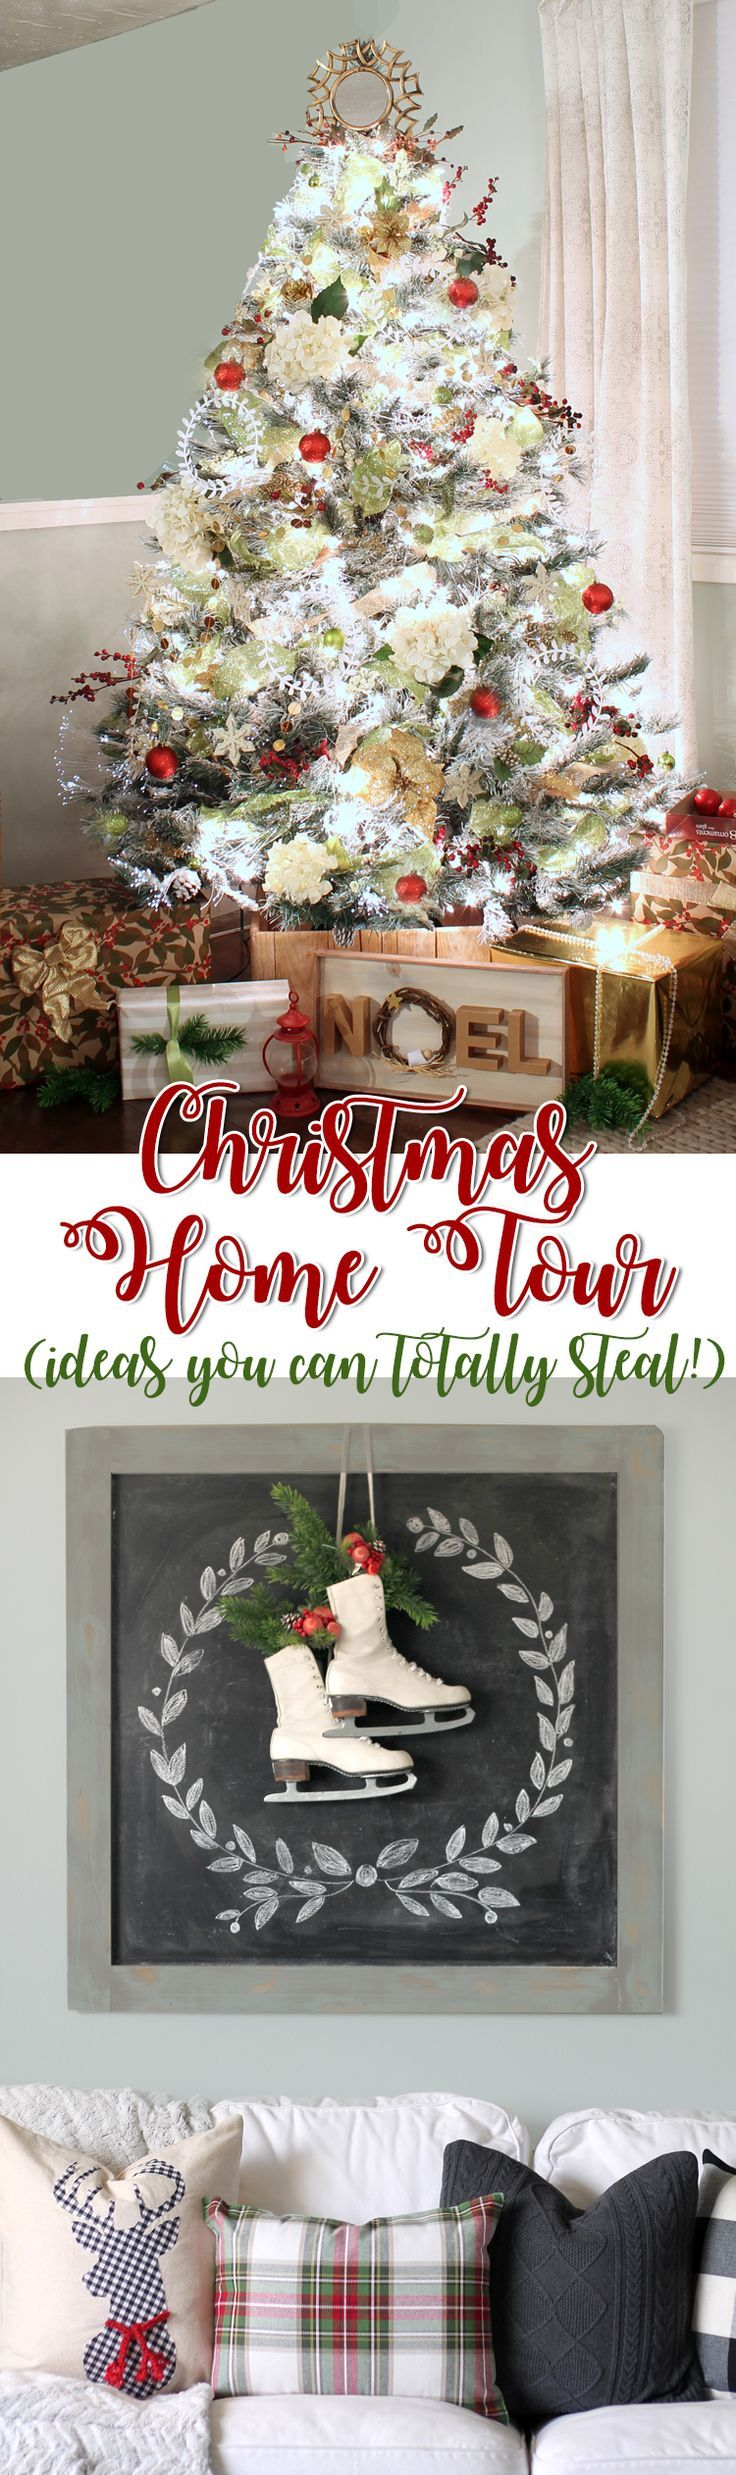 Tons of affordable Christmas decorating ideas in this 2016 holiday home tour. The tree topper idea is genius and I love the vintage wooden sign too. I'm loving all the DIY Christmas decor inspiration!